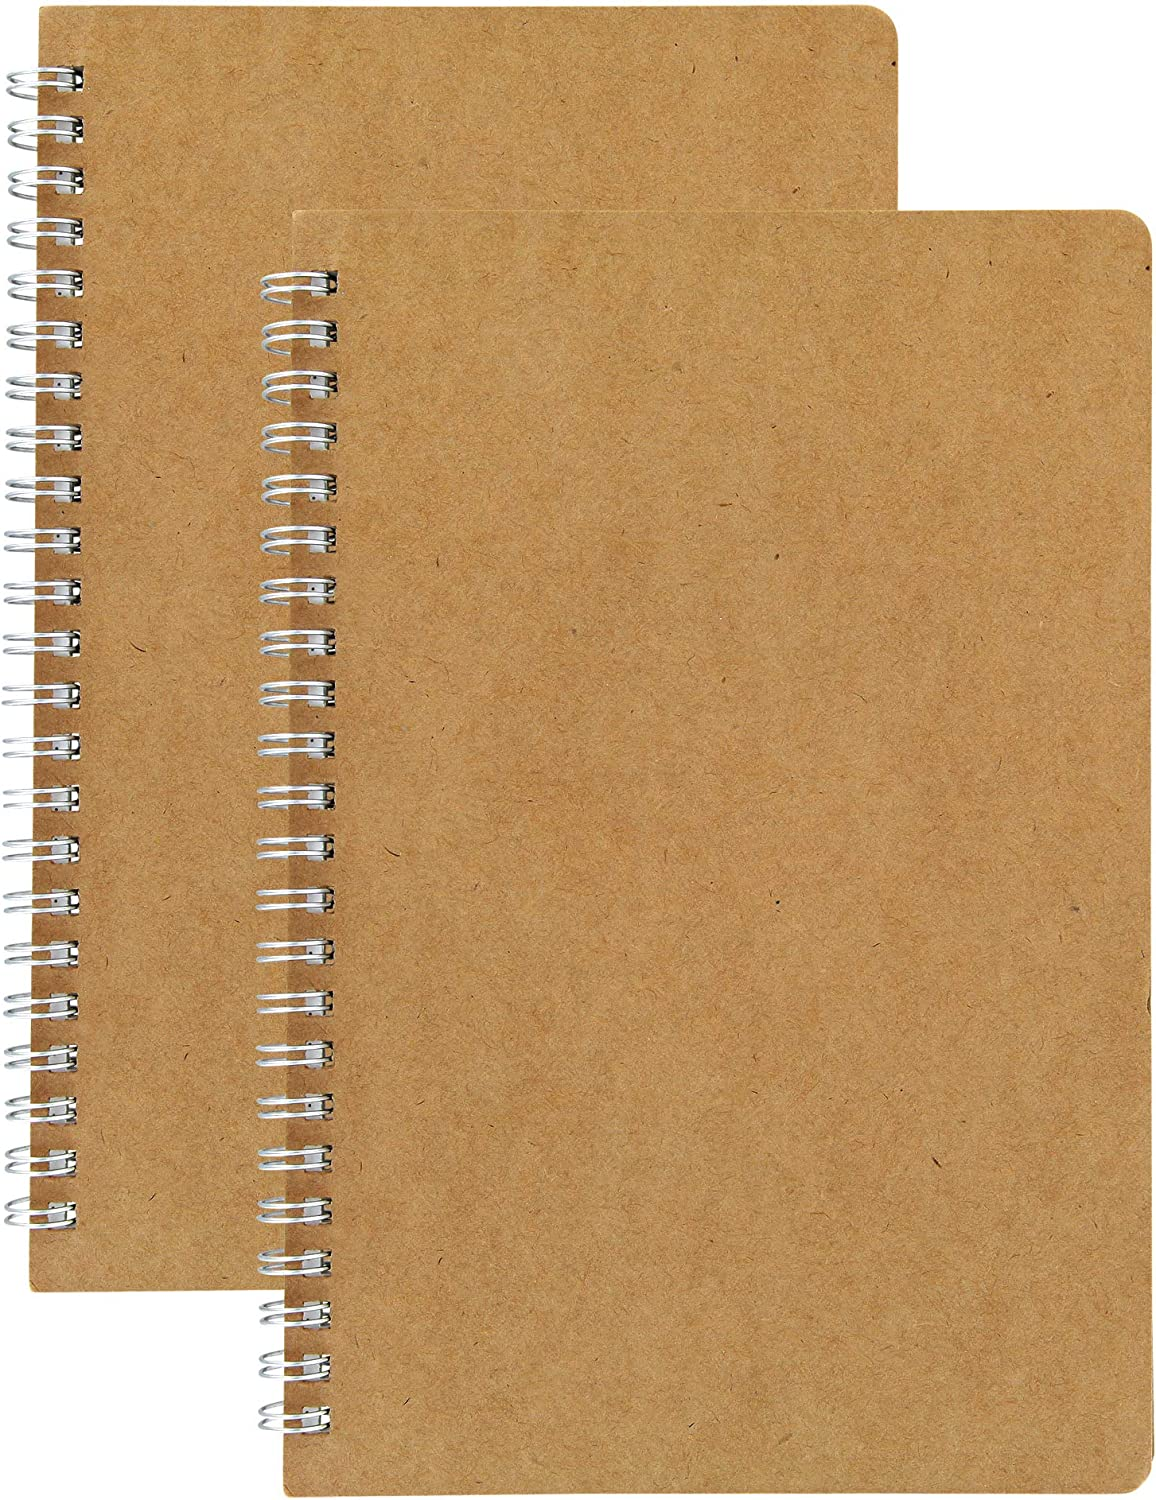 HULYTRAAT Spiral Journal Blank Sketch Book Pad, 5.5 x 8.25 Inches A5, Kraft, 80-Page 40-Sheet Drawing Notebook 2-pack (NBP2)